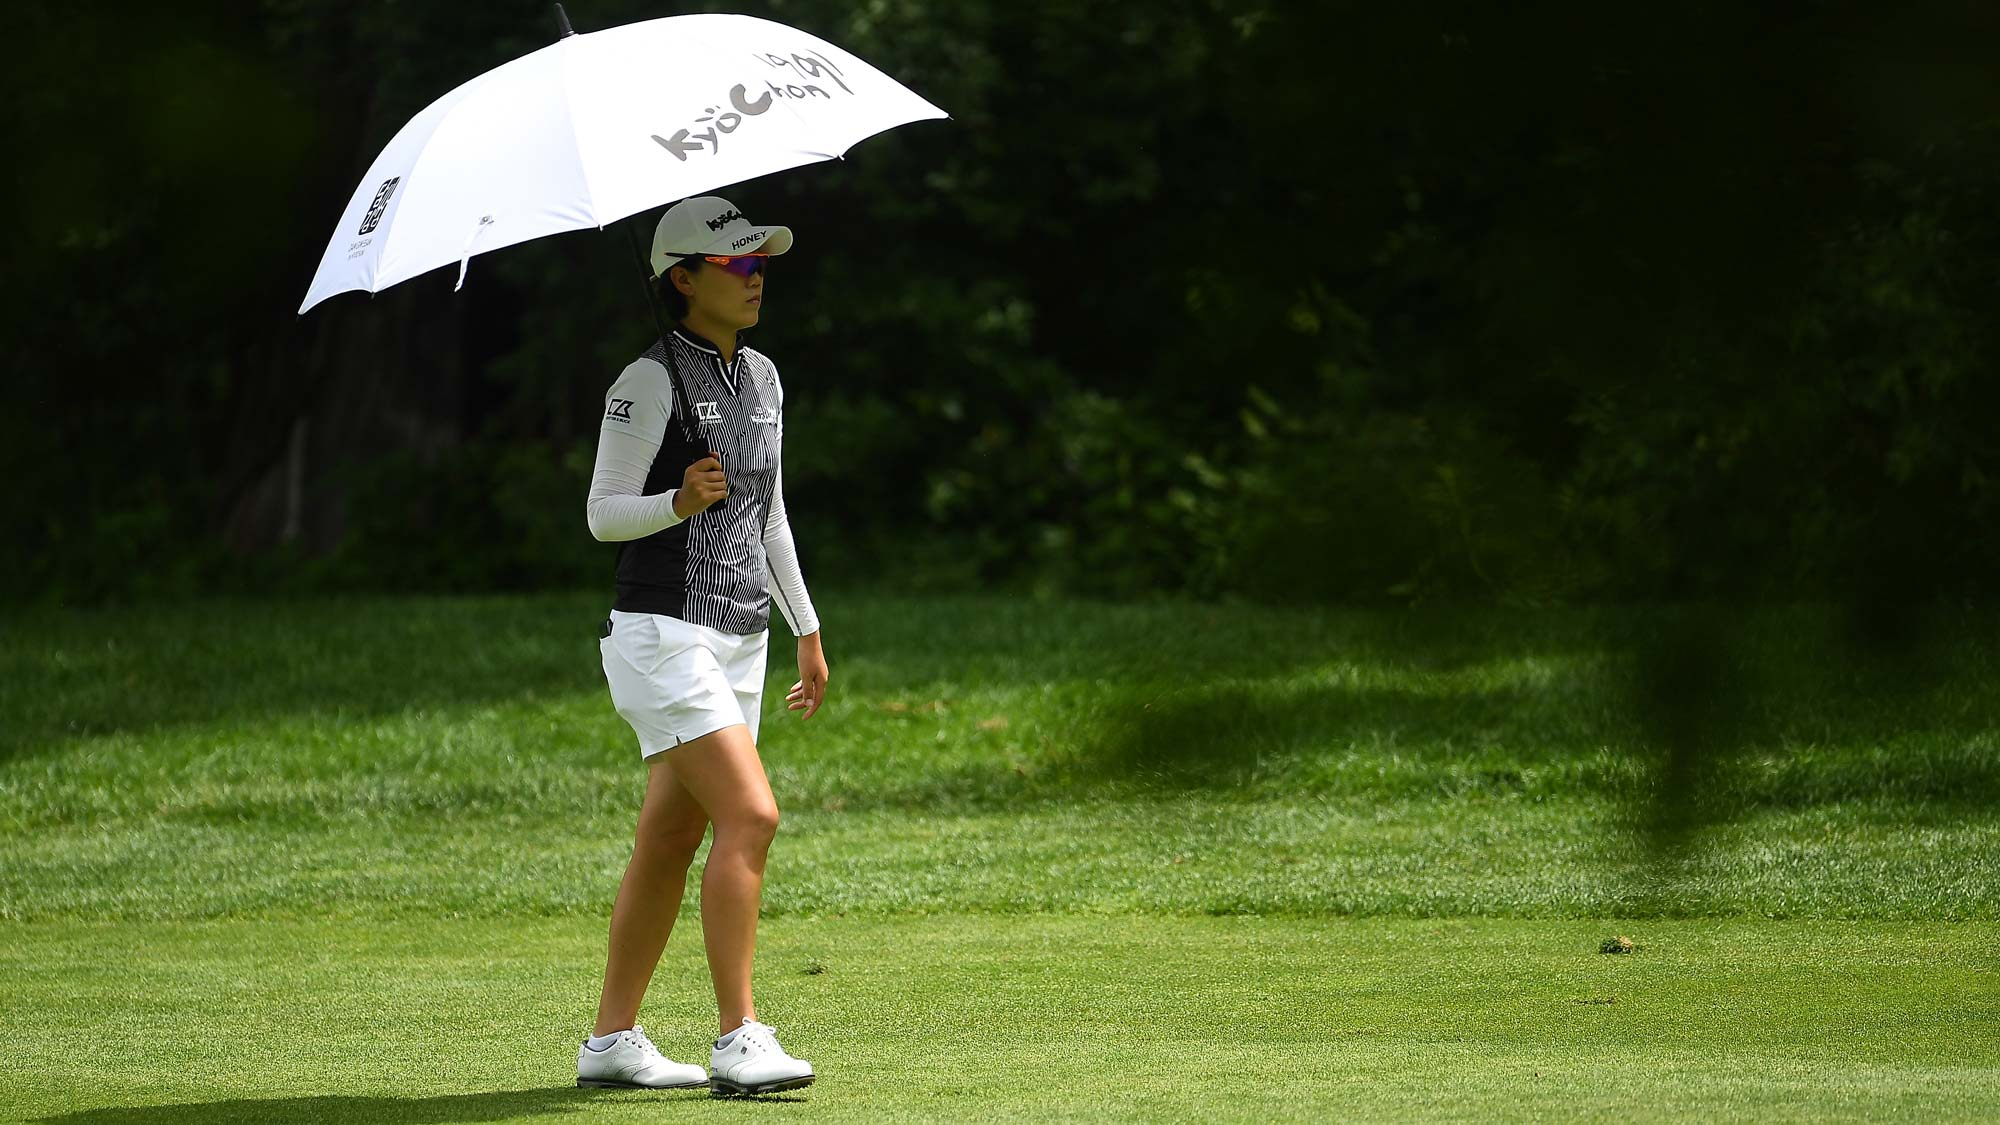 Jeong Eun Lee of the Republic of Korea walks down the first fairway during the second round of the Thornberry Creek LPGA Classic